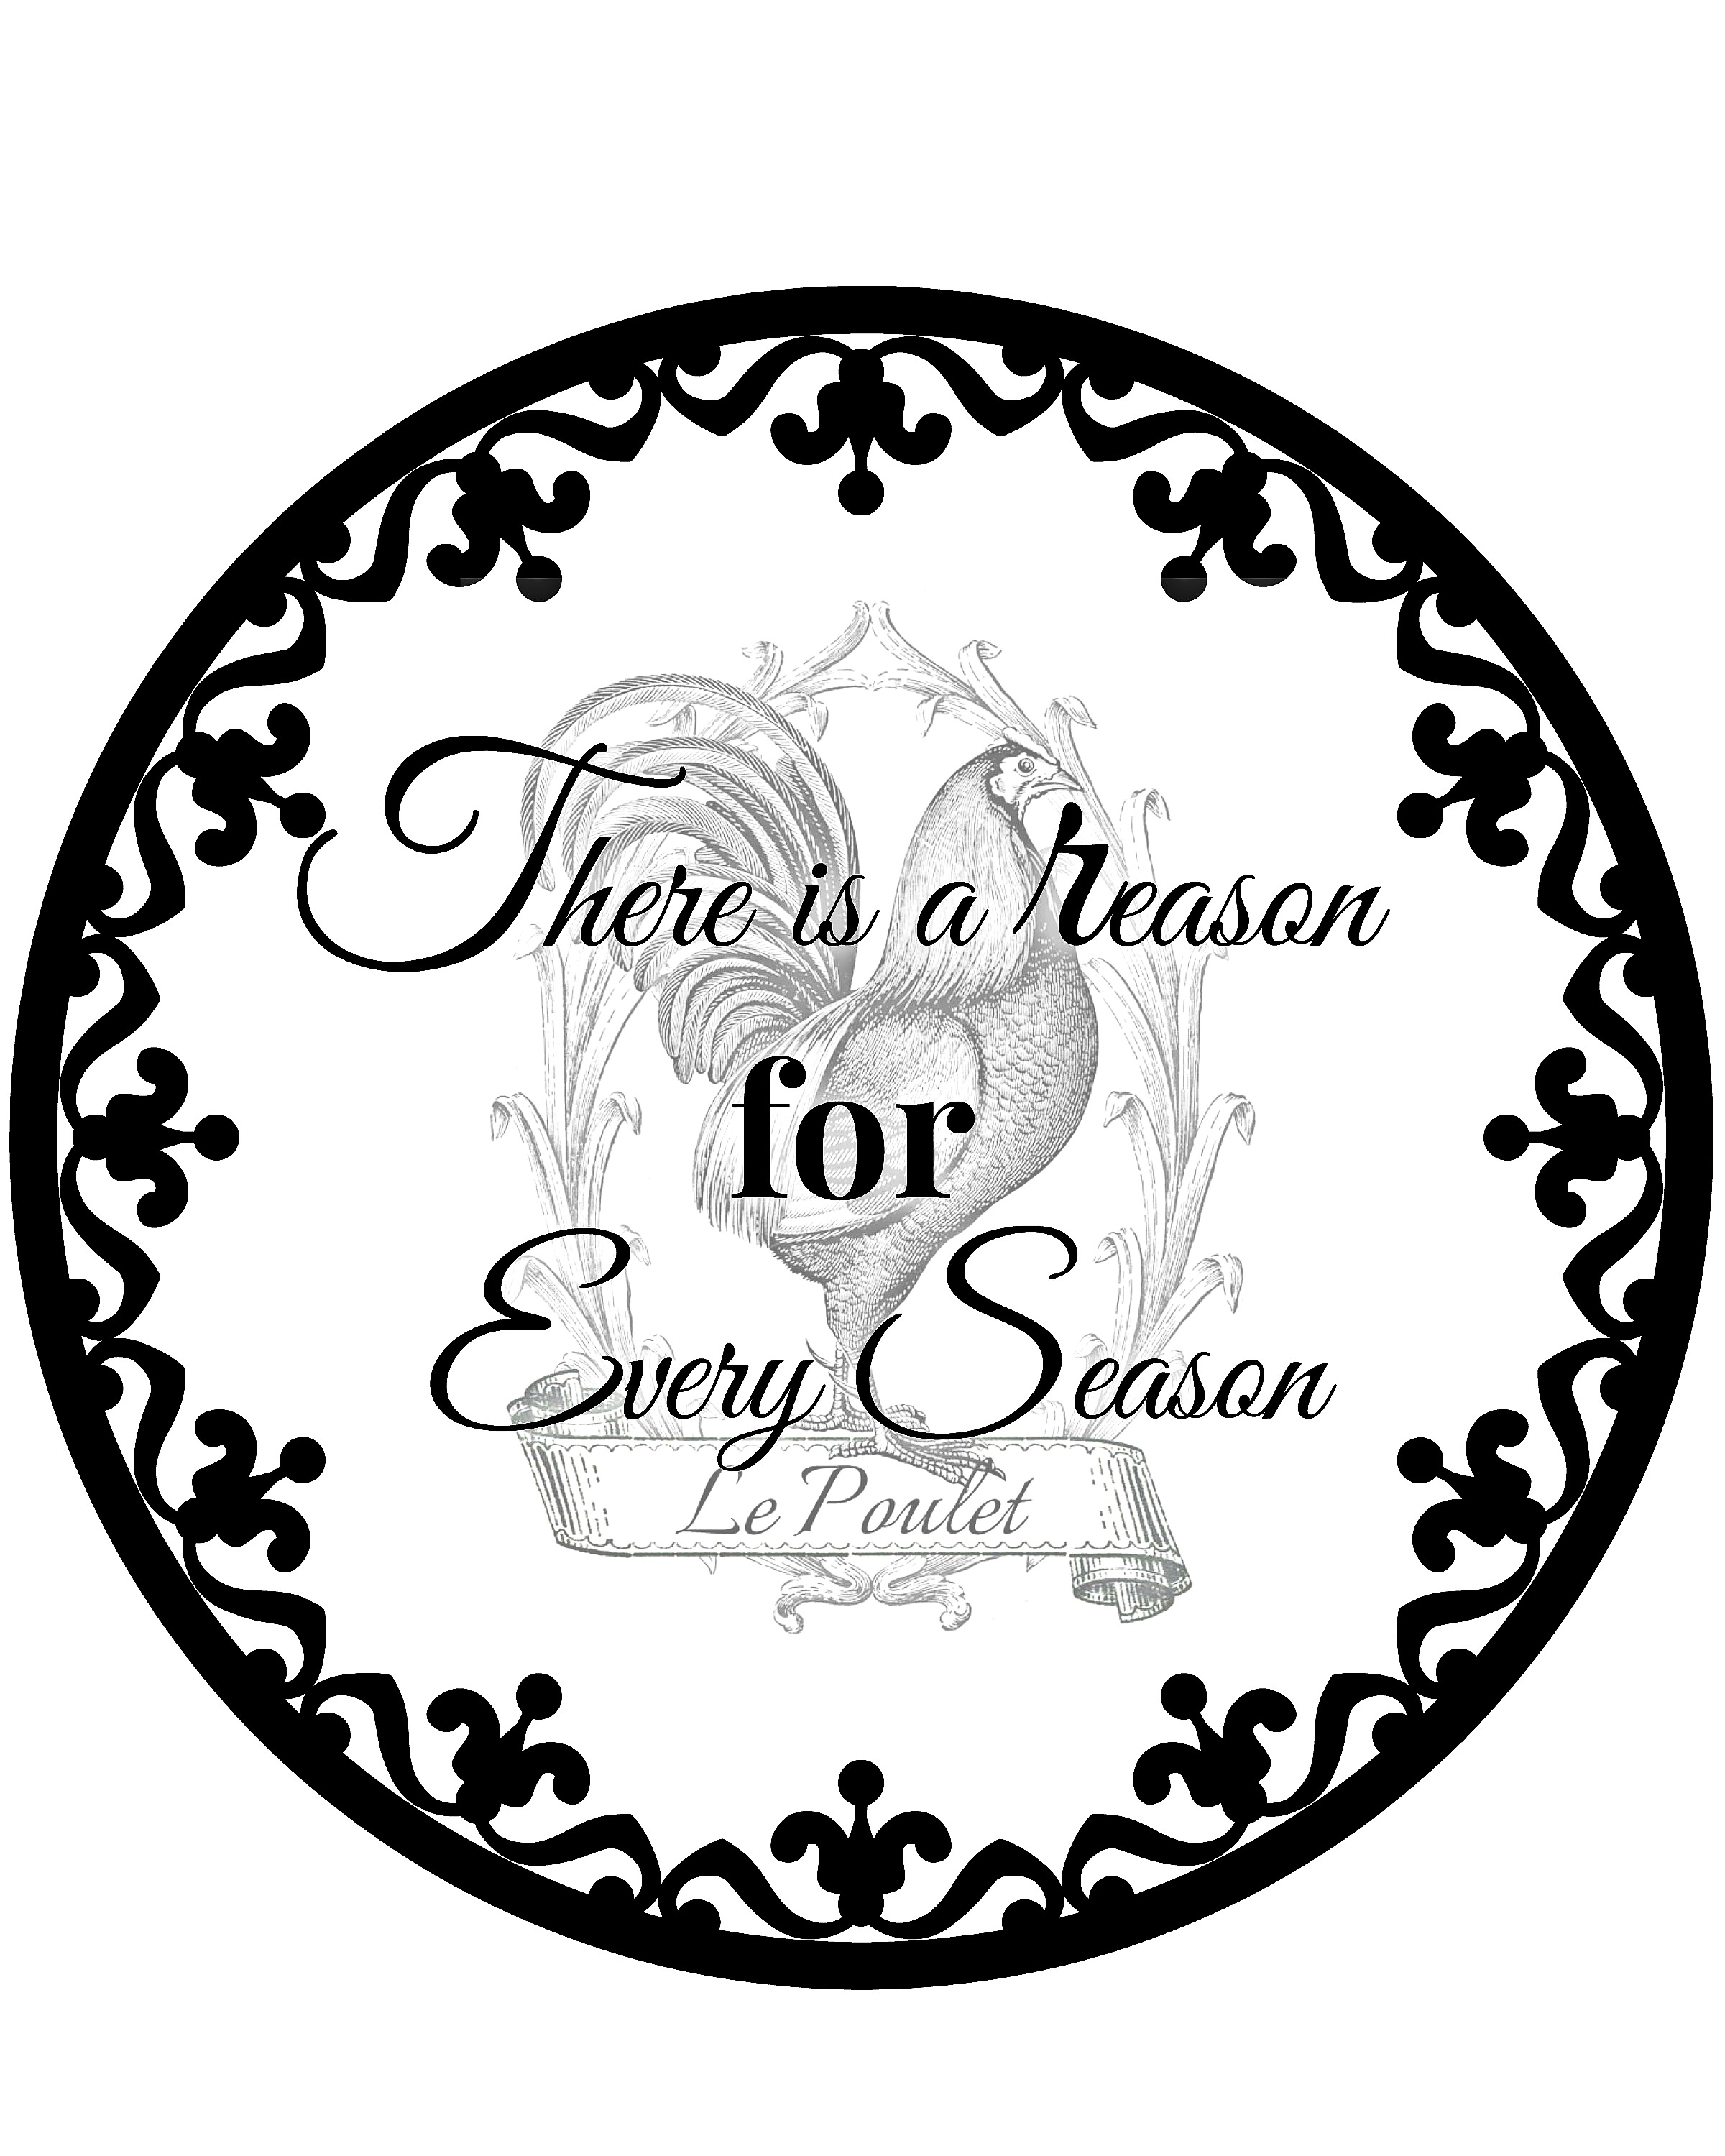 There is a reason for every season